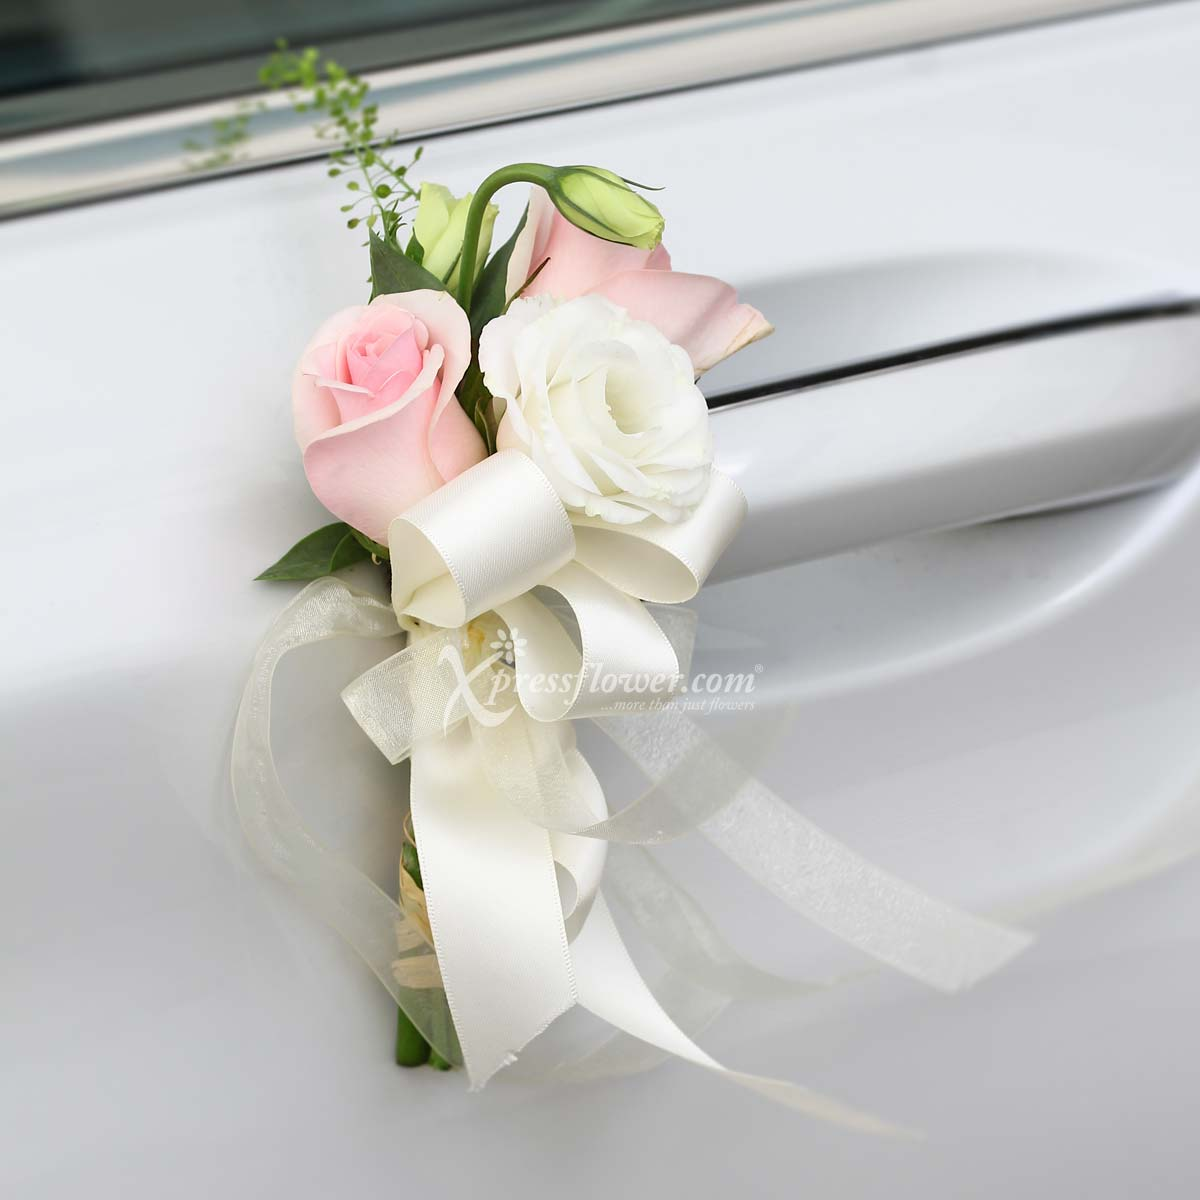 WP1803 WEDDING PACKAGE  Premium